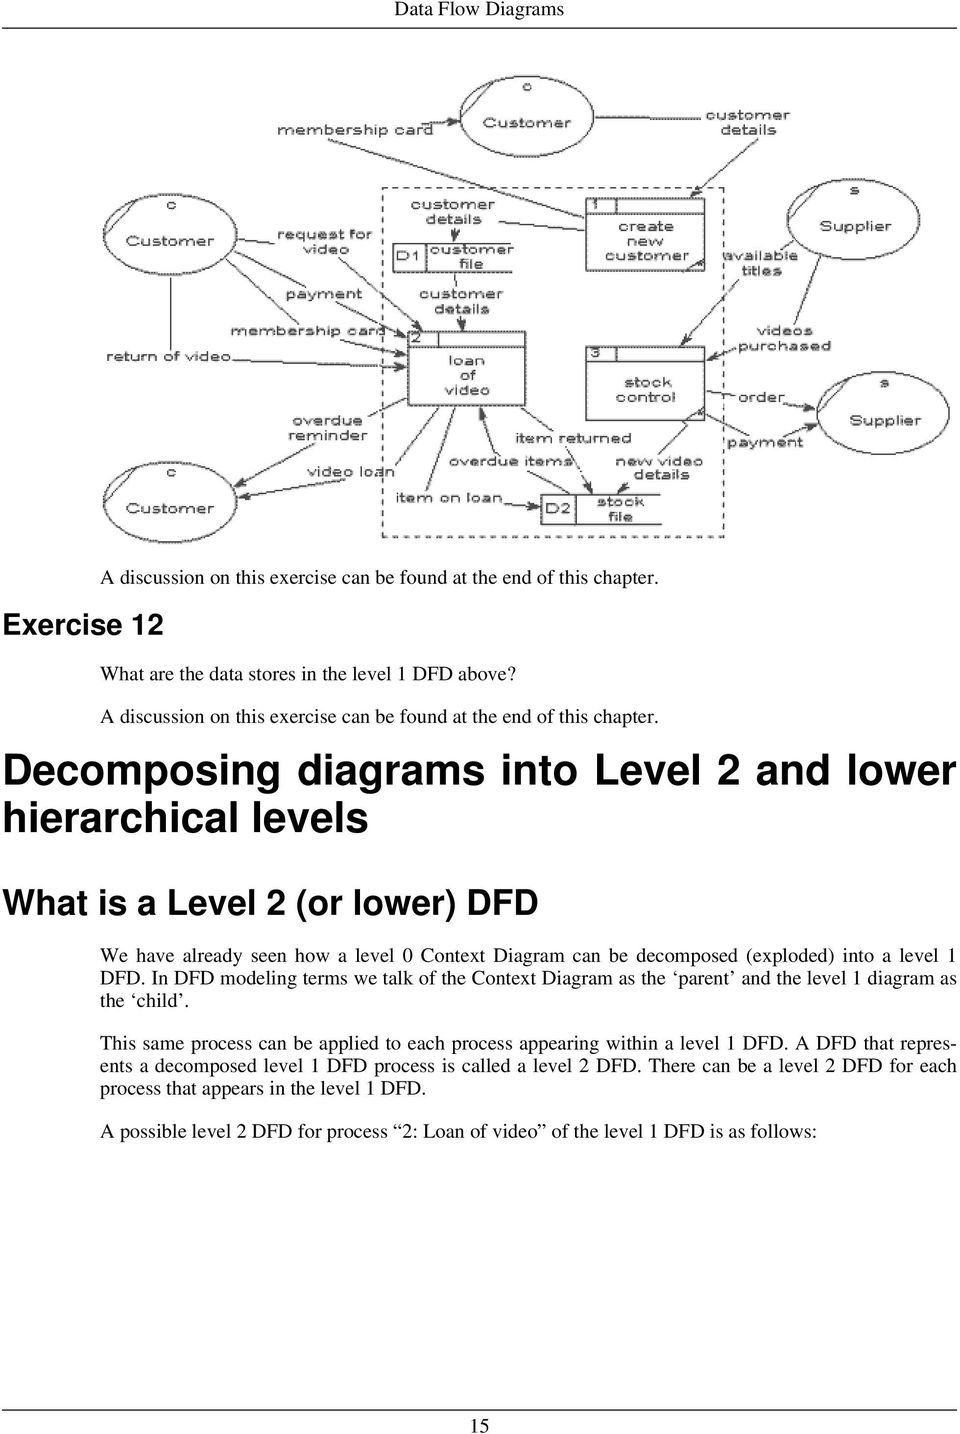 hight resolution of decomposing diagrams into level 2 and lower hierarchical levels what is a level 2 or